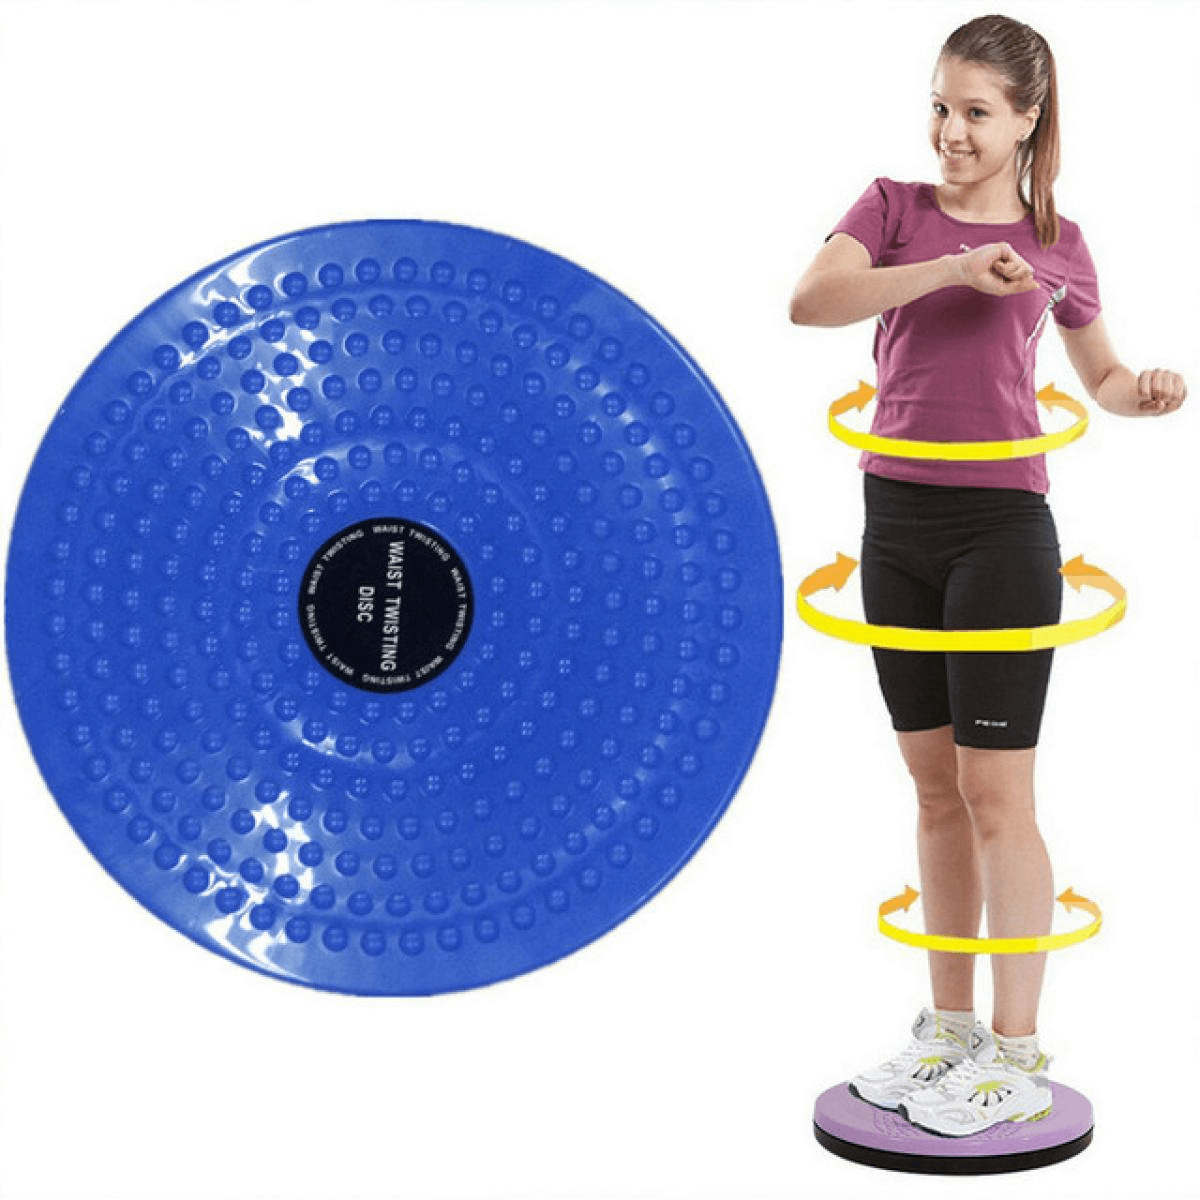 Twisting Disc for Waist Exercise